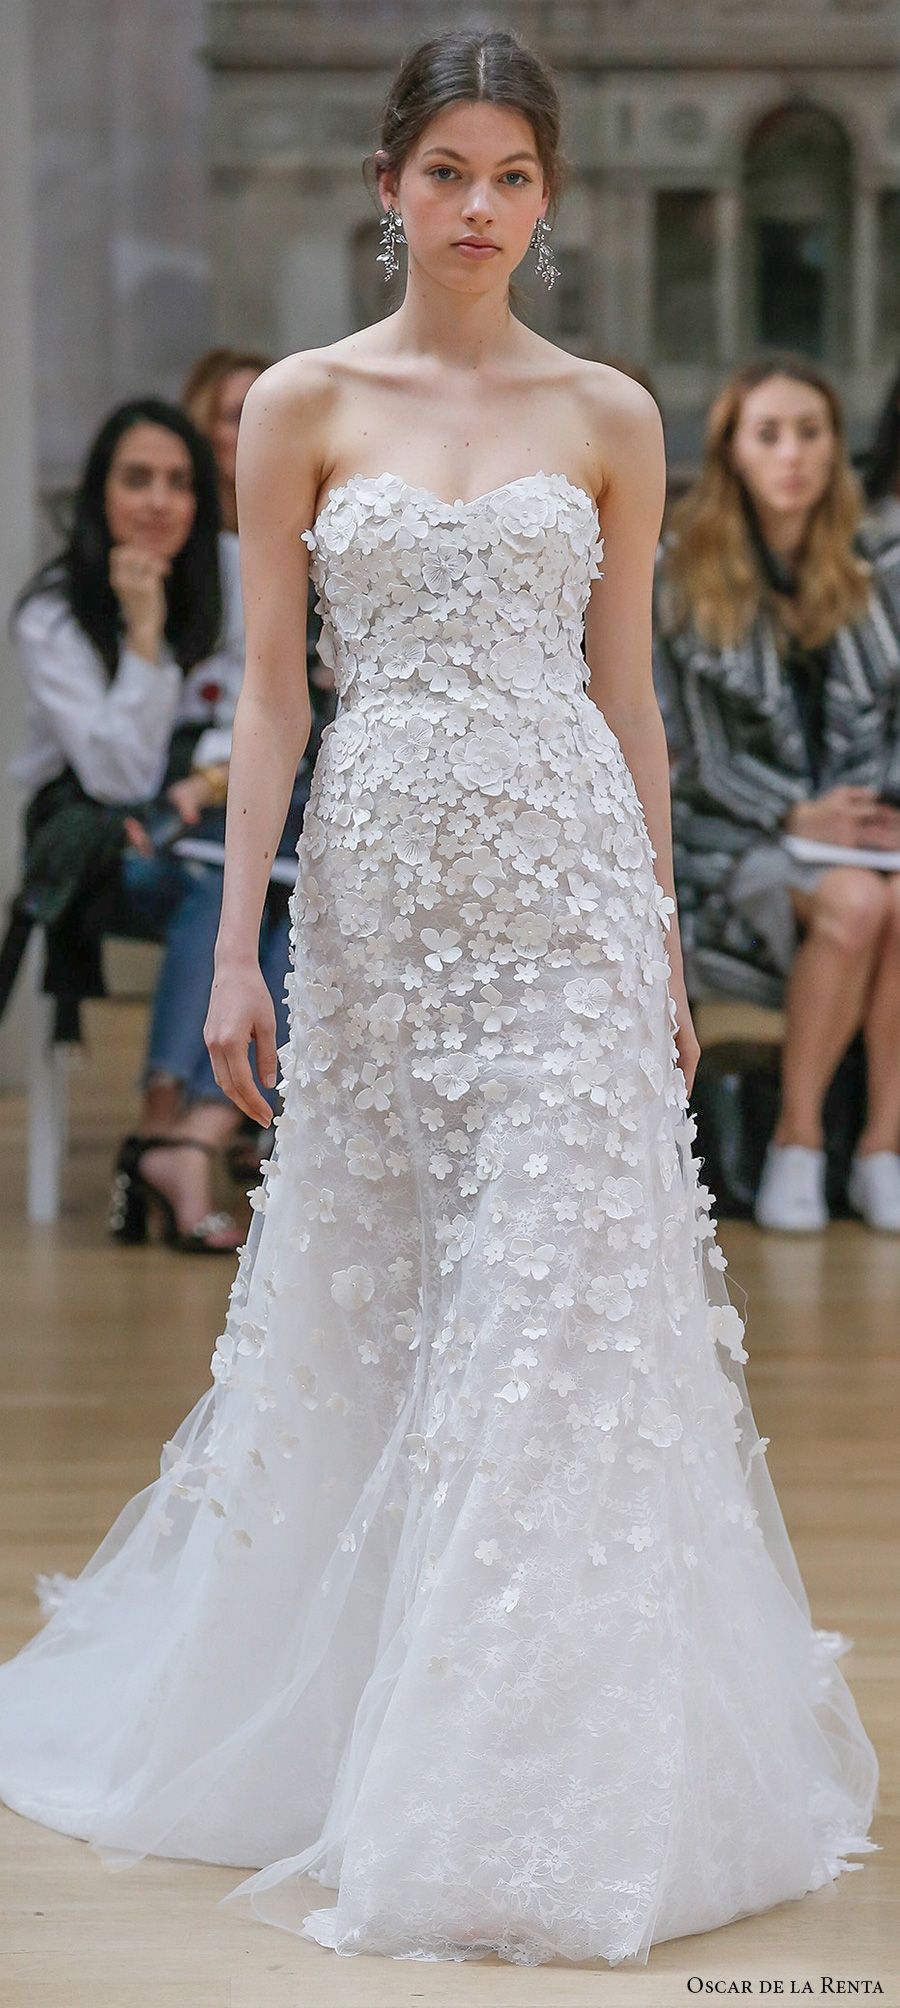 Oscar de la renta spring wedding dresses u new york bridal